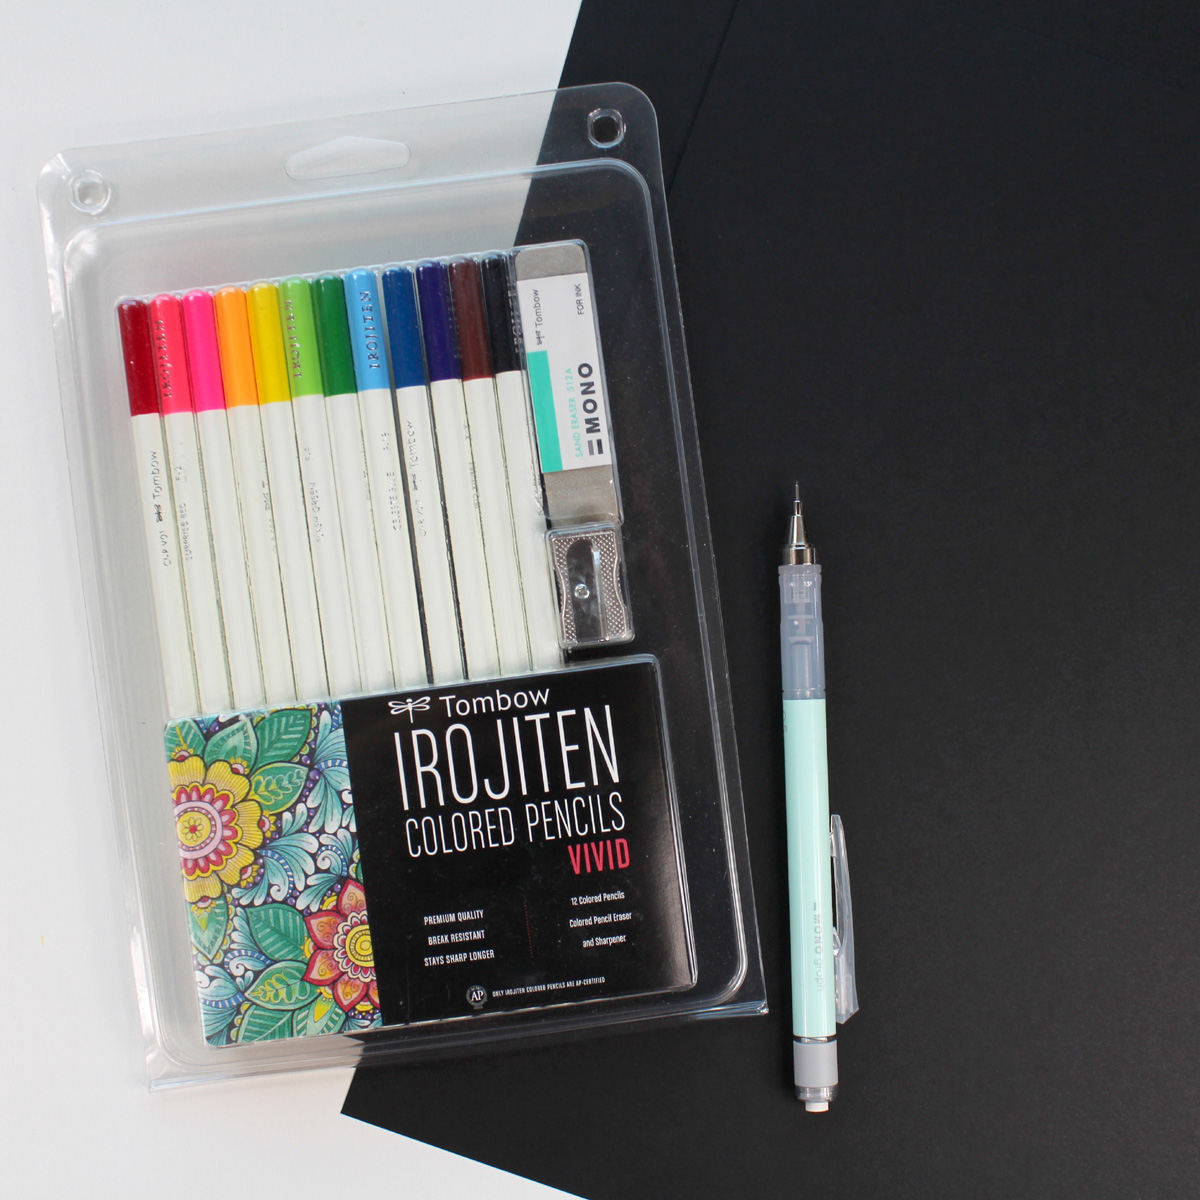 Supplies needed to learn bounce lettering using irojiten colored pencils.